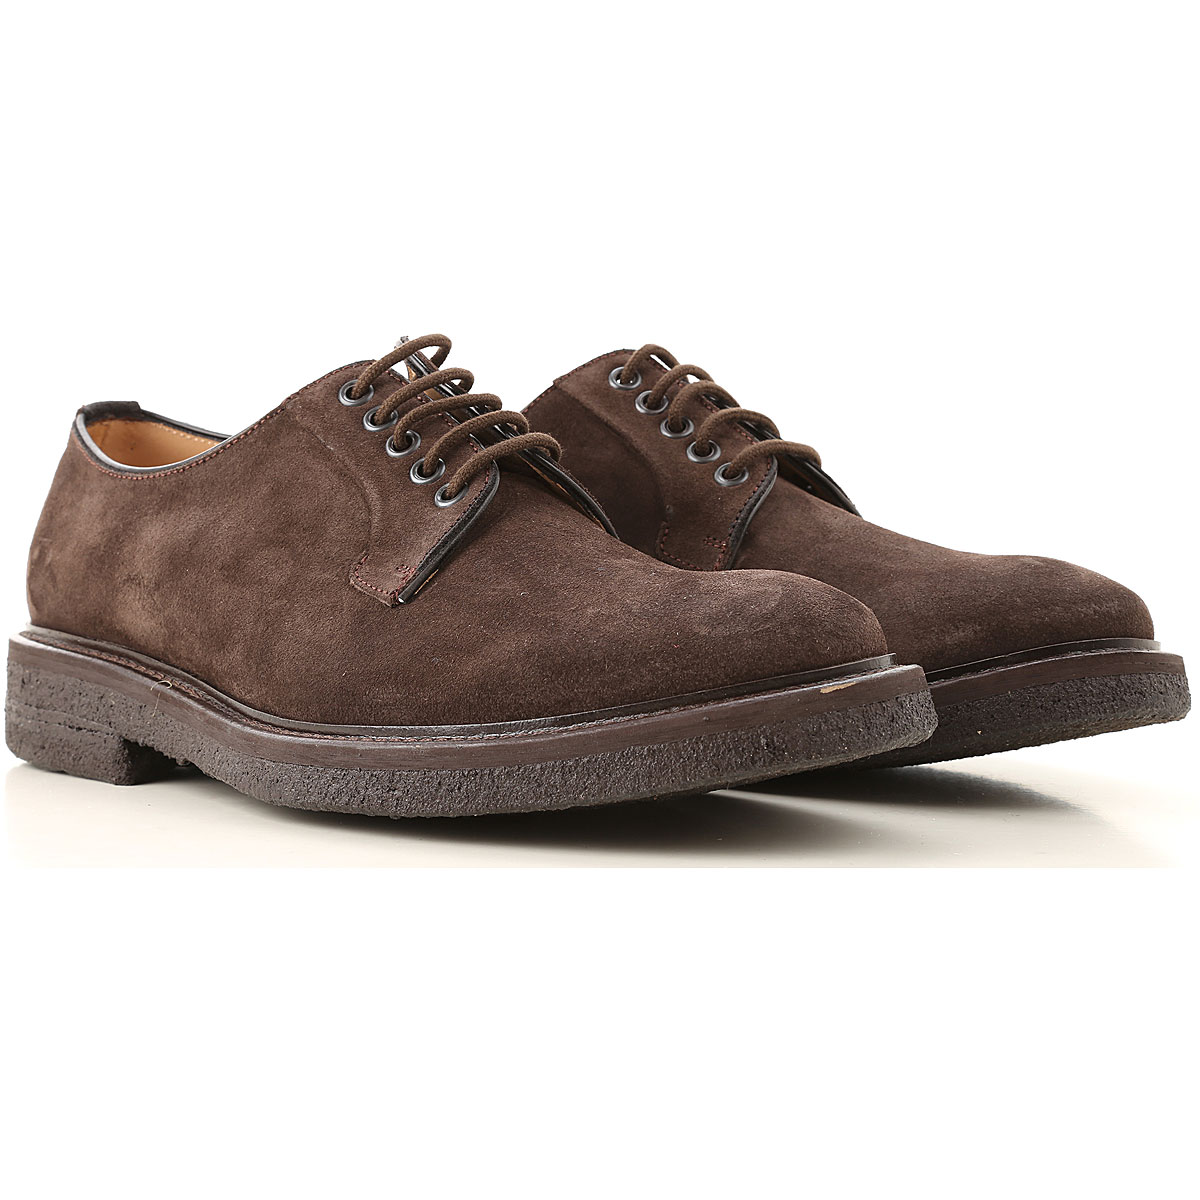 Seboys Lace Up Shoes for Men Oxfords, Derbies and Brogues On Sale, Dark Brown, Suede leather, 2019, 10 10.25 7 7.5 7.75 8 9.5